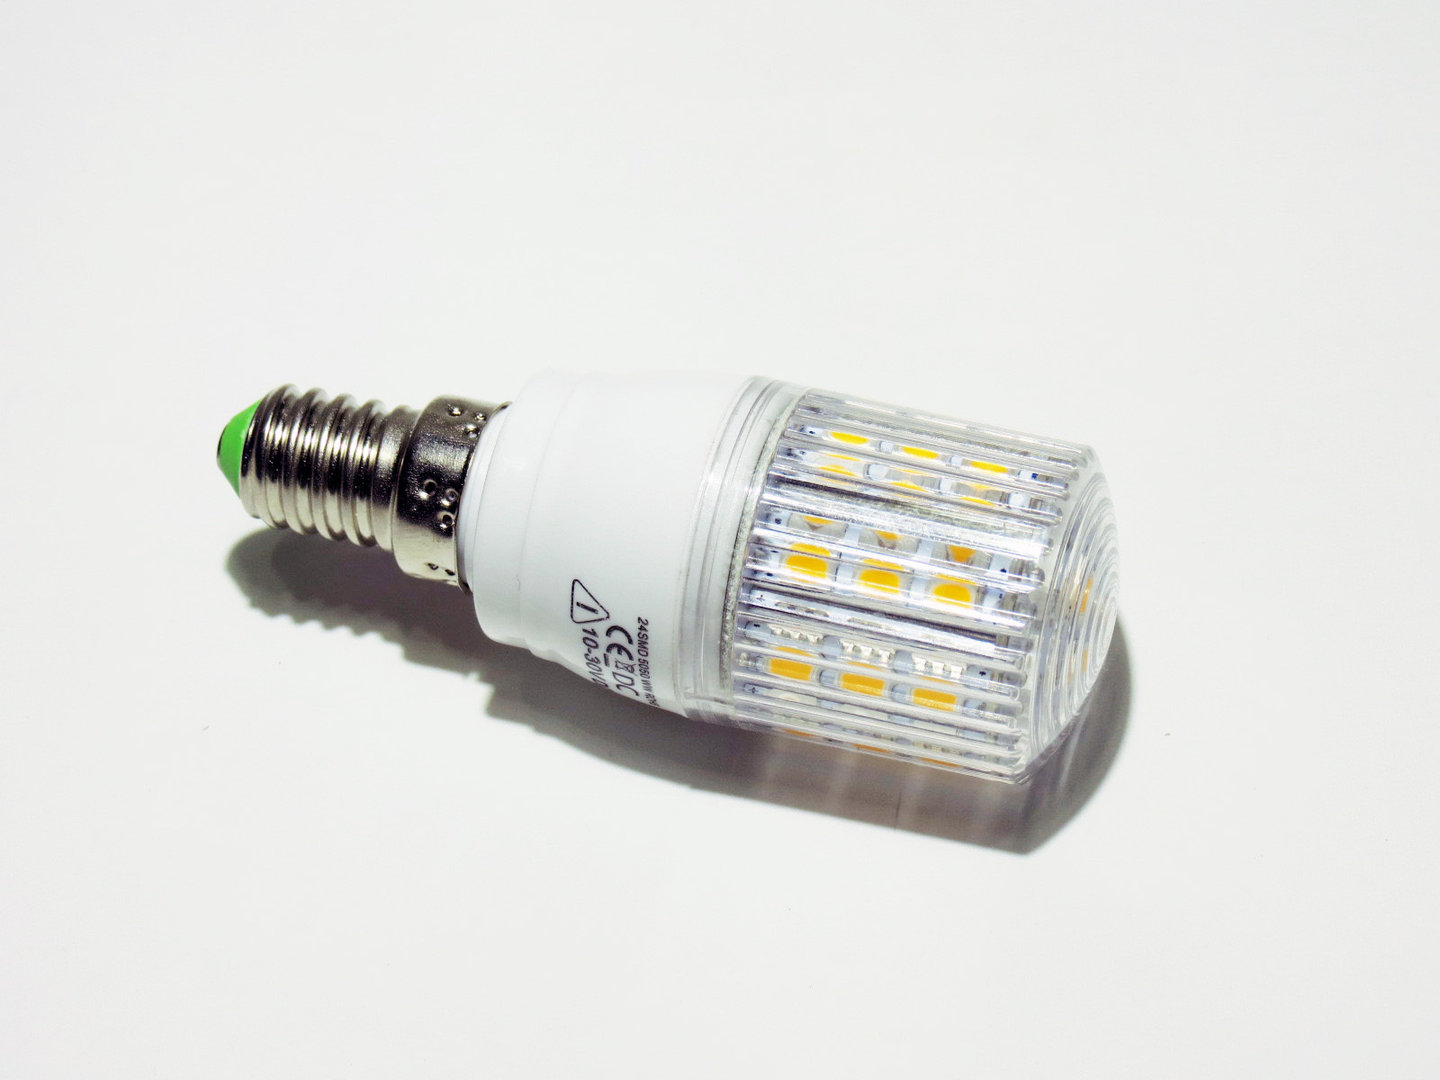 E14 24 LED SMD 10-30V warmweiß